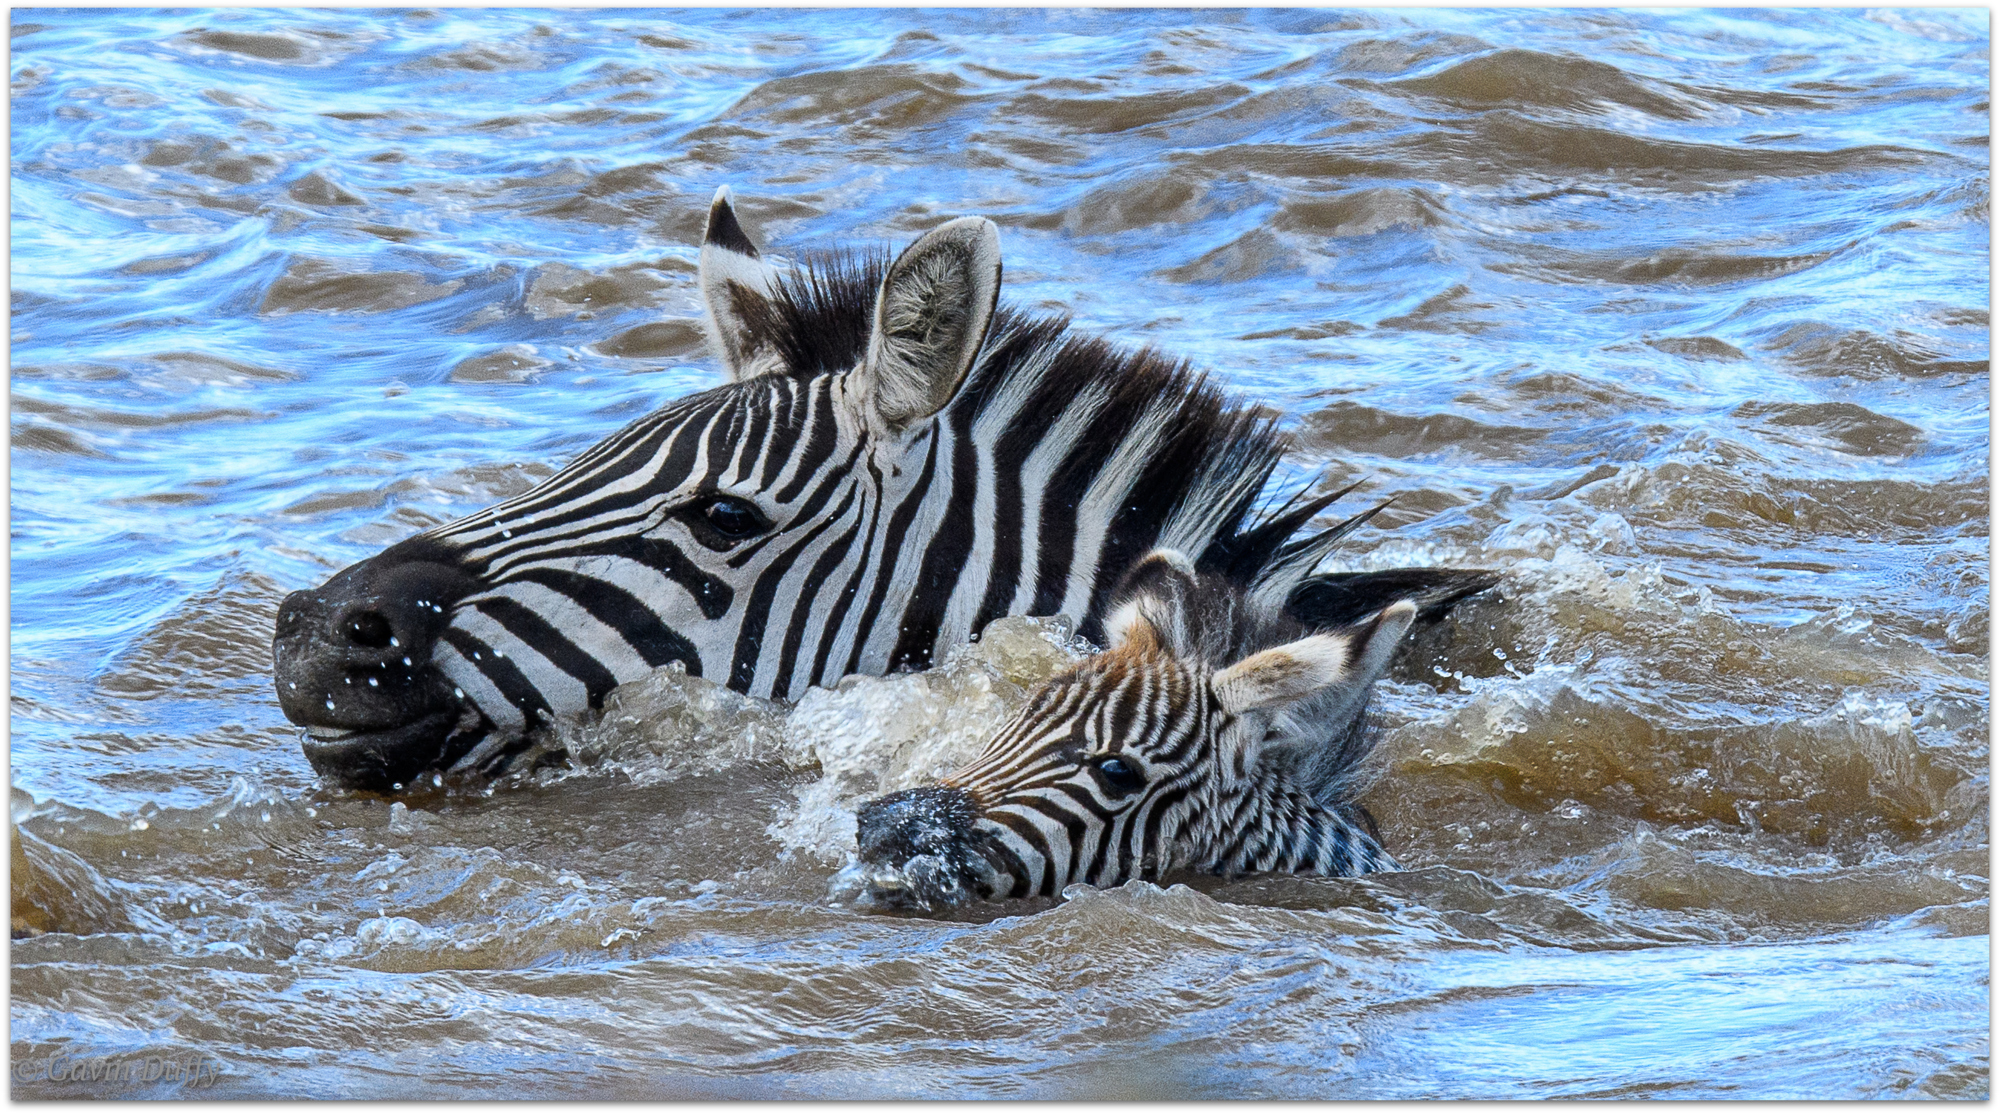 A zebra attempts to guide and protect its young foal while crossing the Mara River © Gavin Duffy